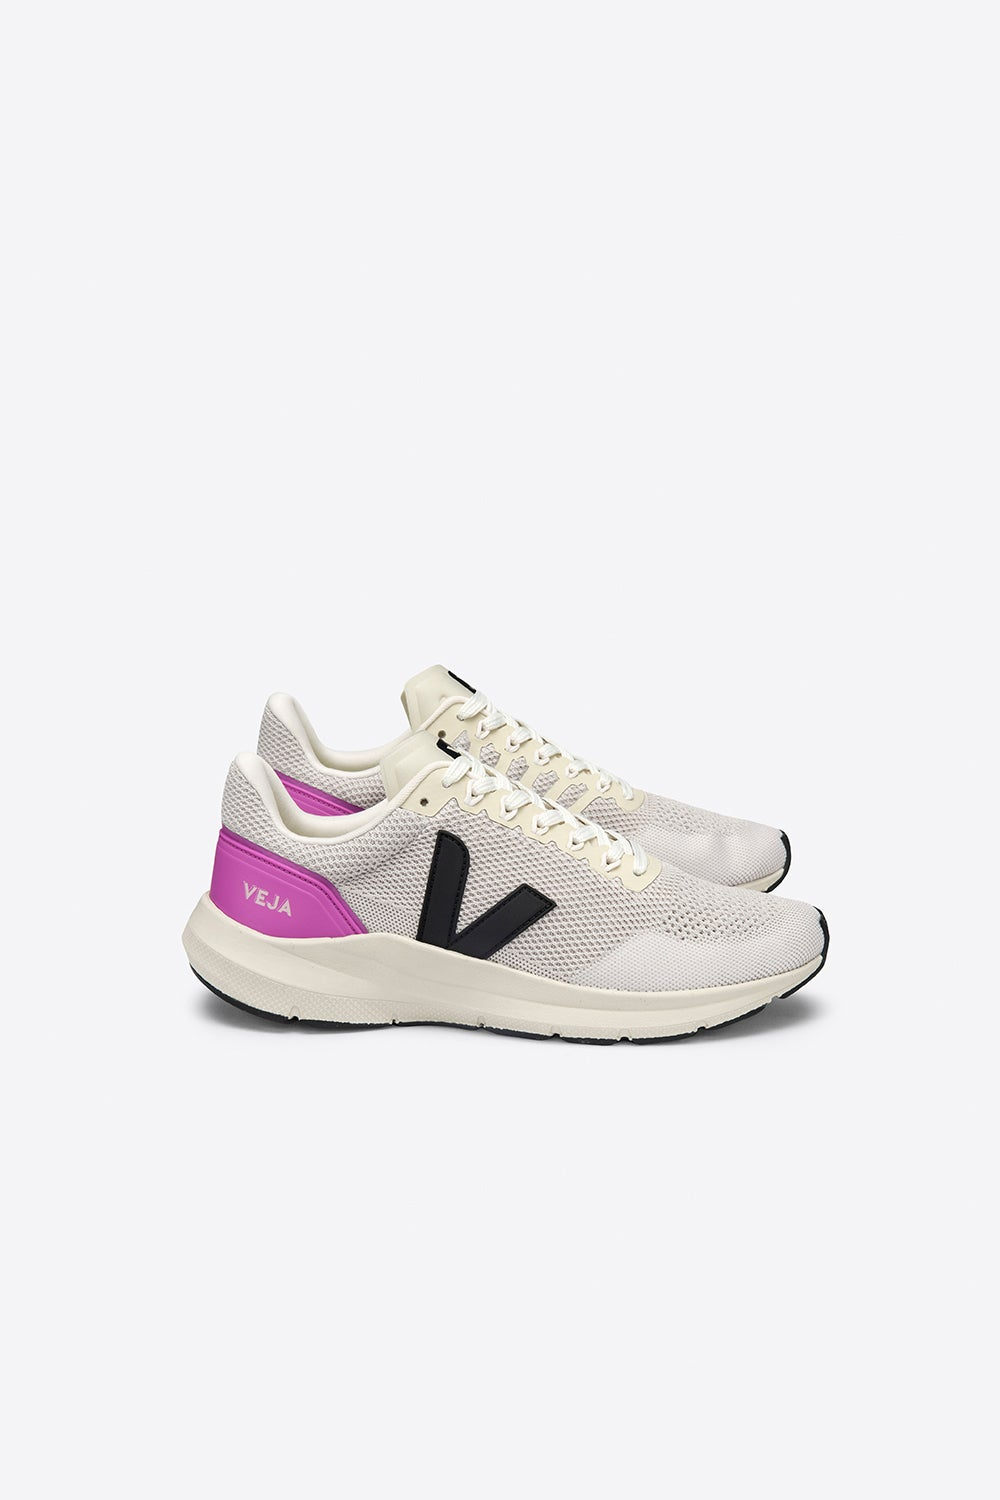 Veja Marlin Chalk/Black/Ultraviolet